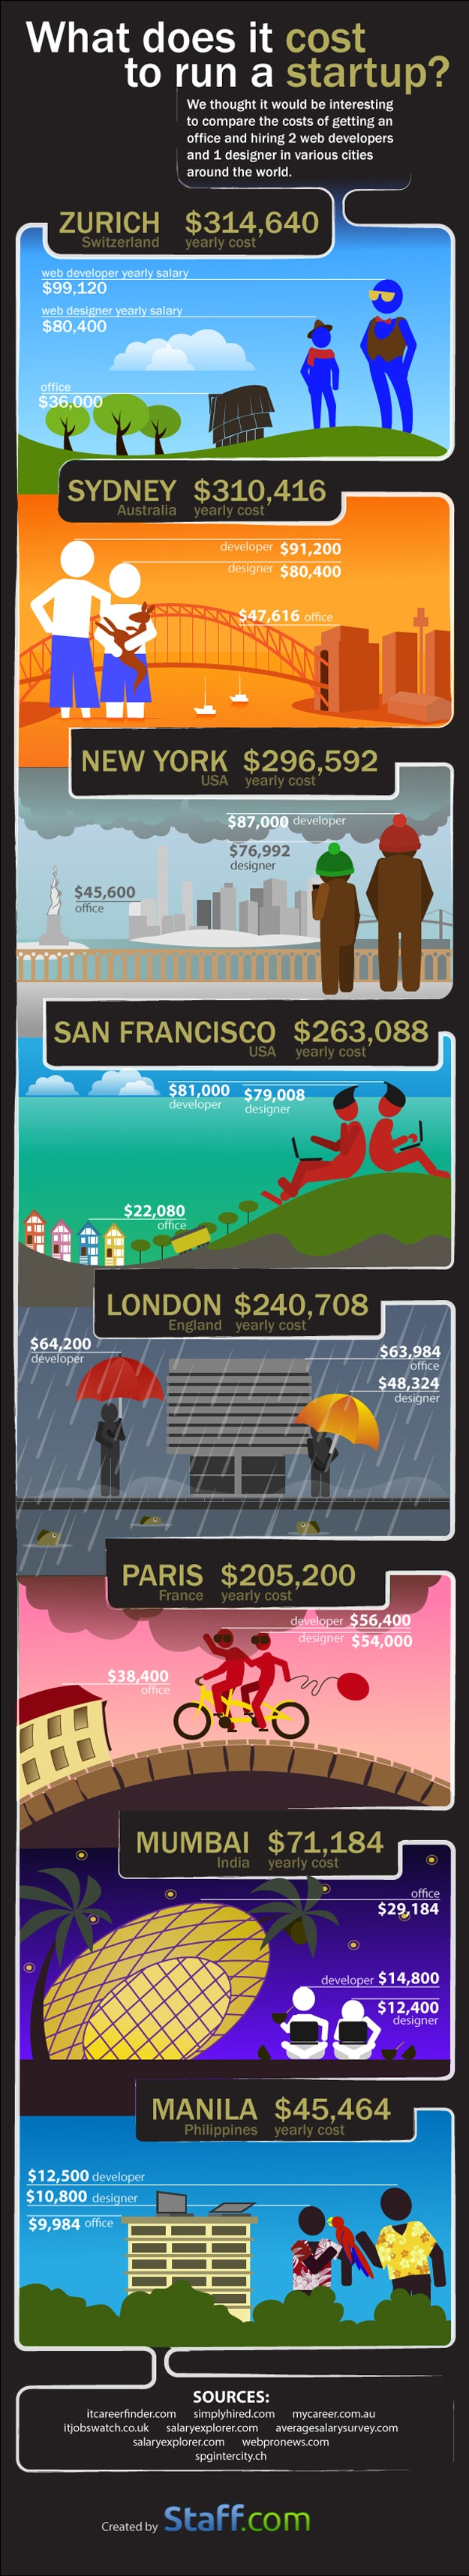 How Much Does It Cost To Run A Startup Around The World? [Infographic]